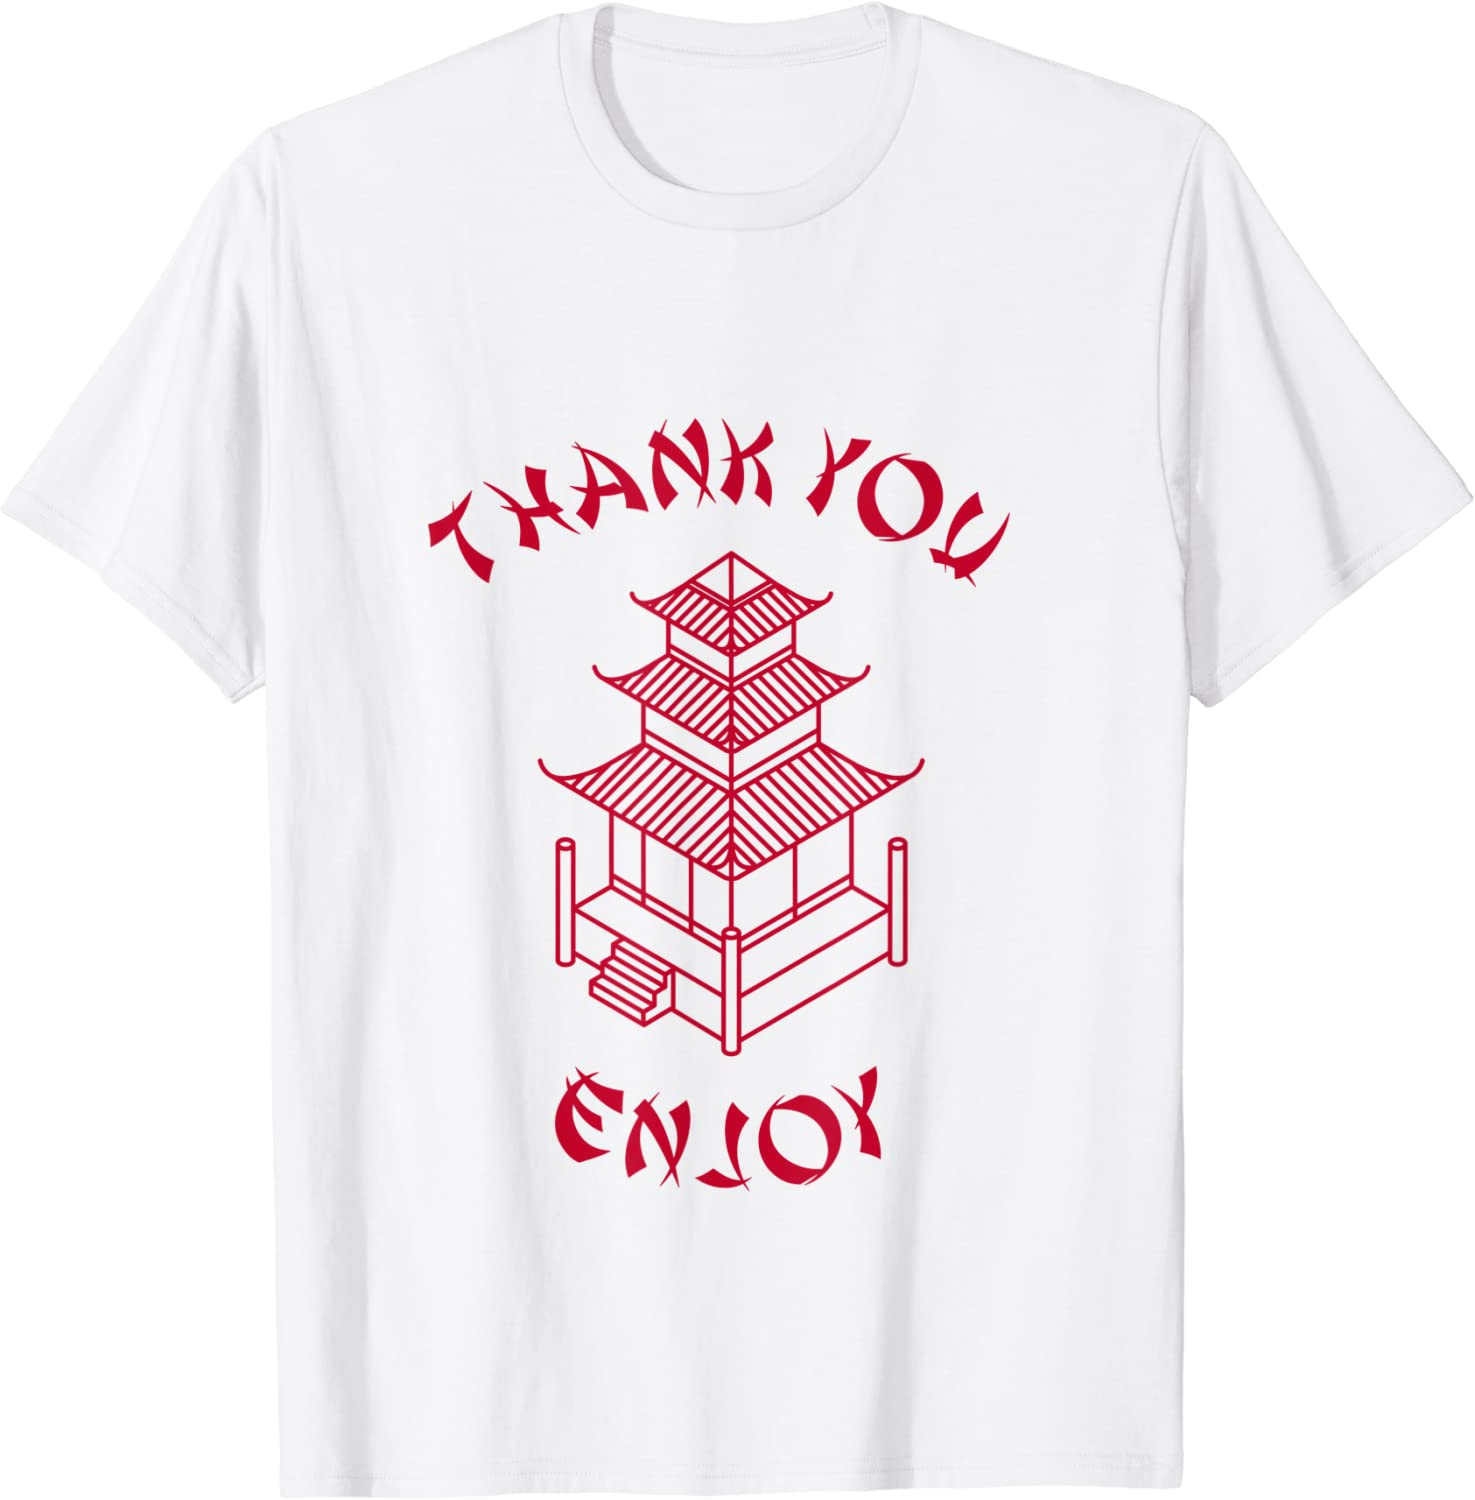 Chinese Takeout Food Thank You Enjoy Funny Tshirt Costume T-Shirt